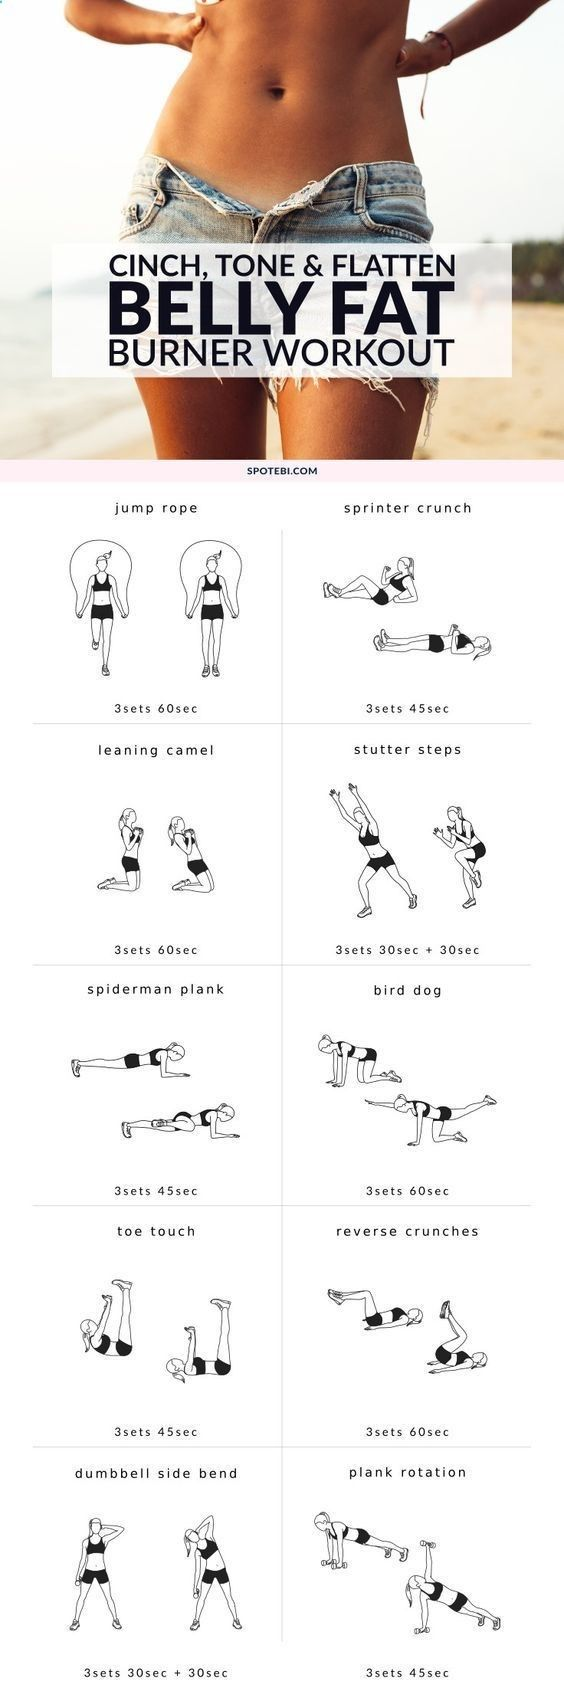 Wont six-pack Abs, gain muscle or weight loss, these workout